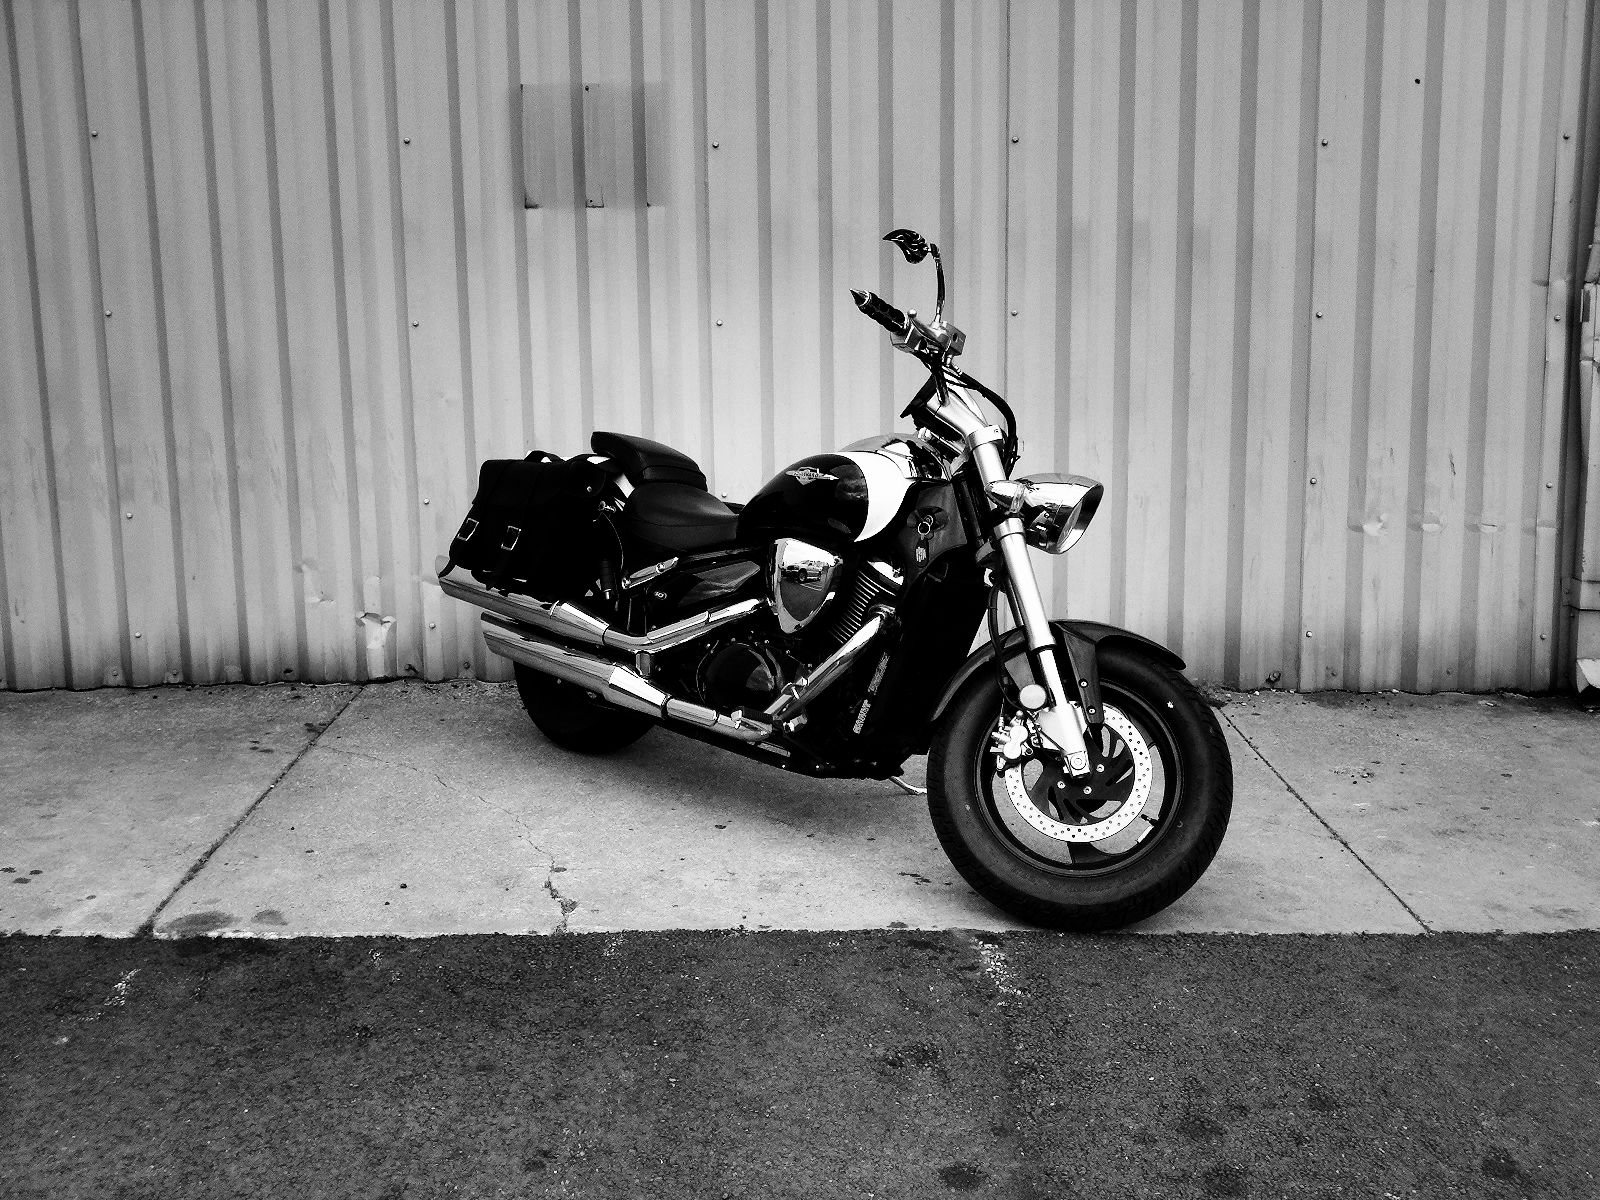 Show off you M50. Post  your best pics.-c360_2012-04-20-18-51-15.jpg